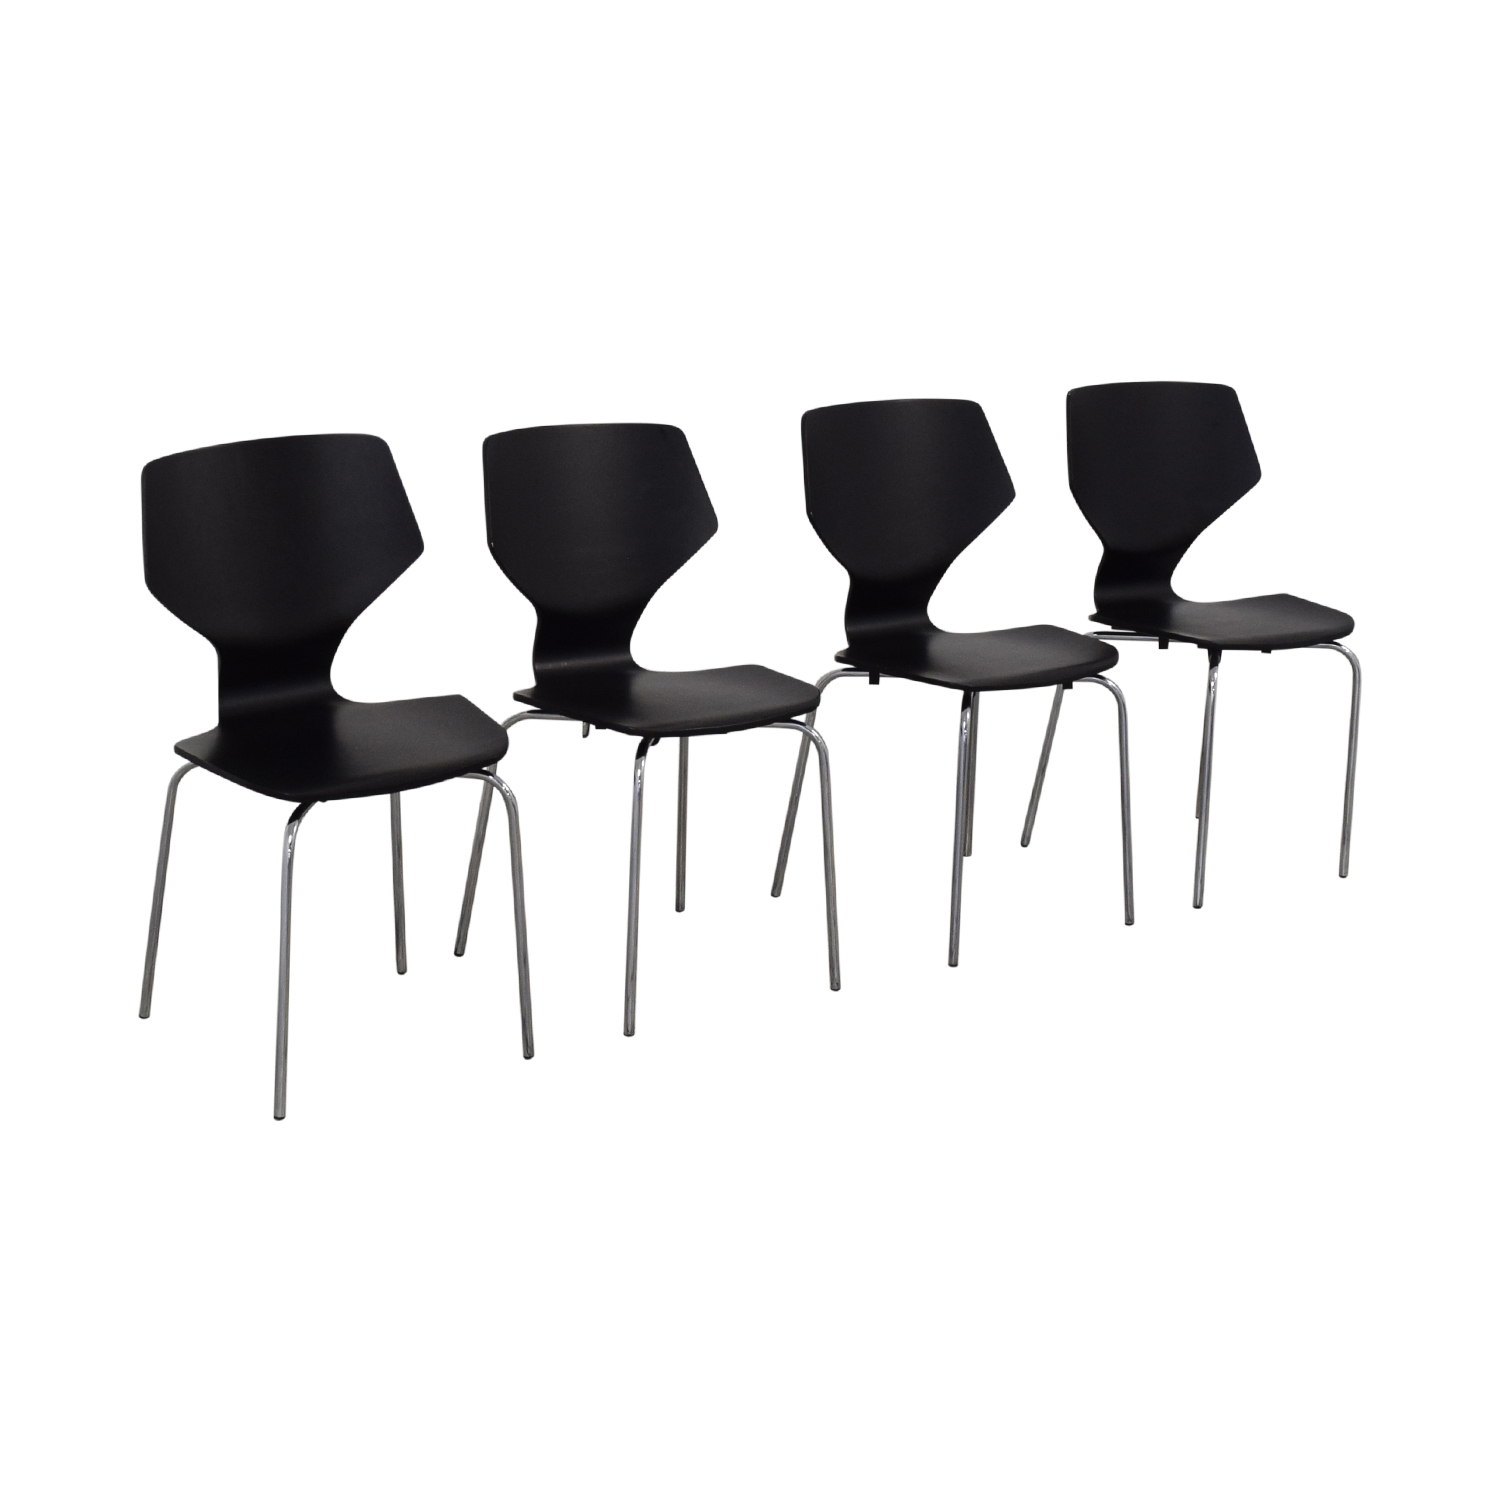 Room & Board Room & Board Pike Dining Chairs second hand